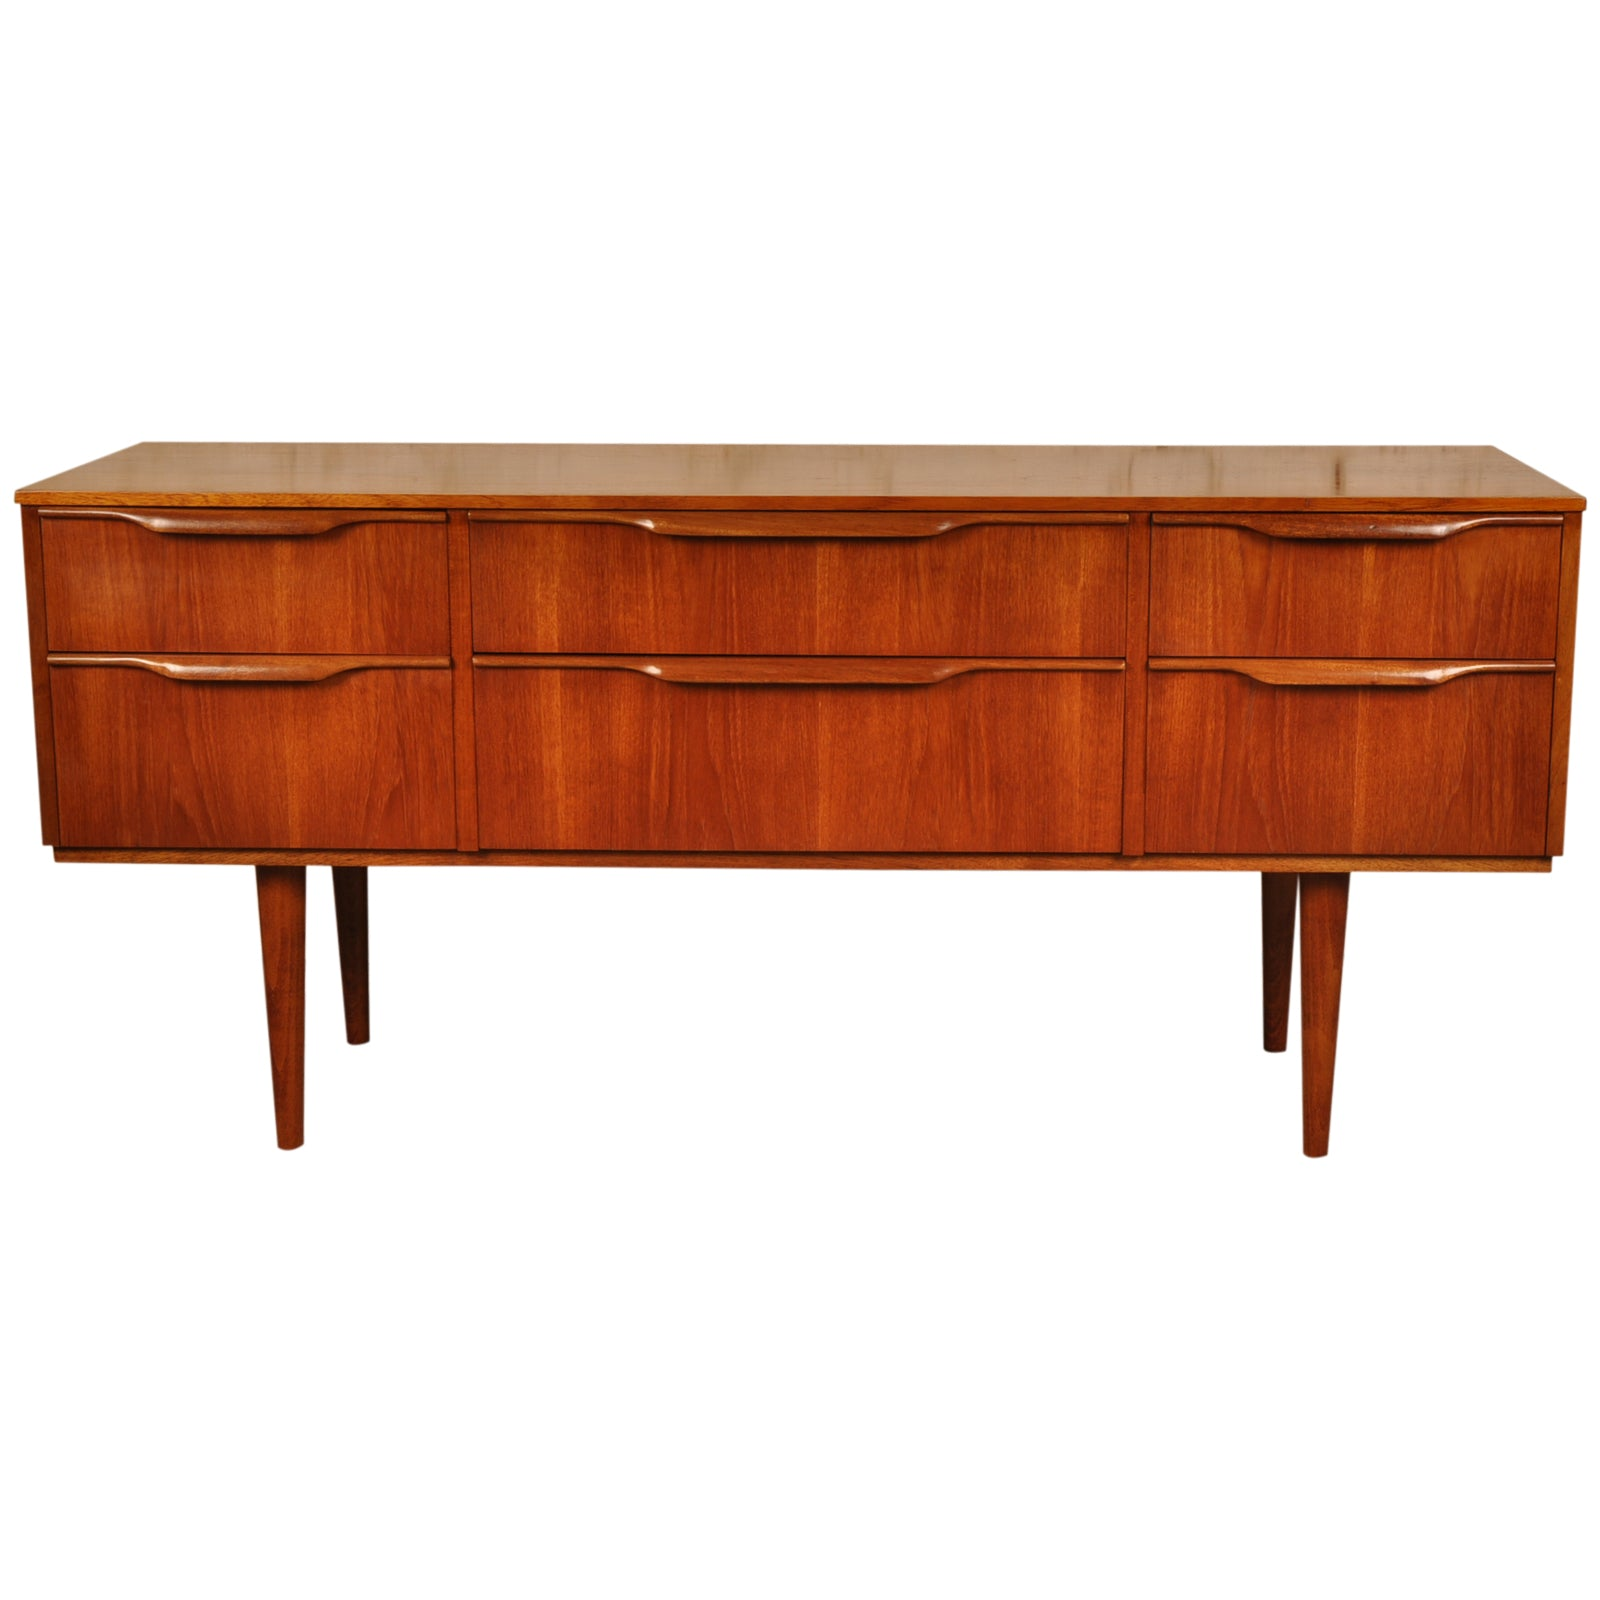 Mid Century Selecta Sideboard / Drawers by Austinsuite, 1960s in teak and afromosia